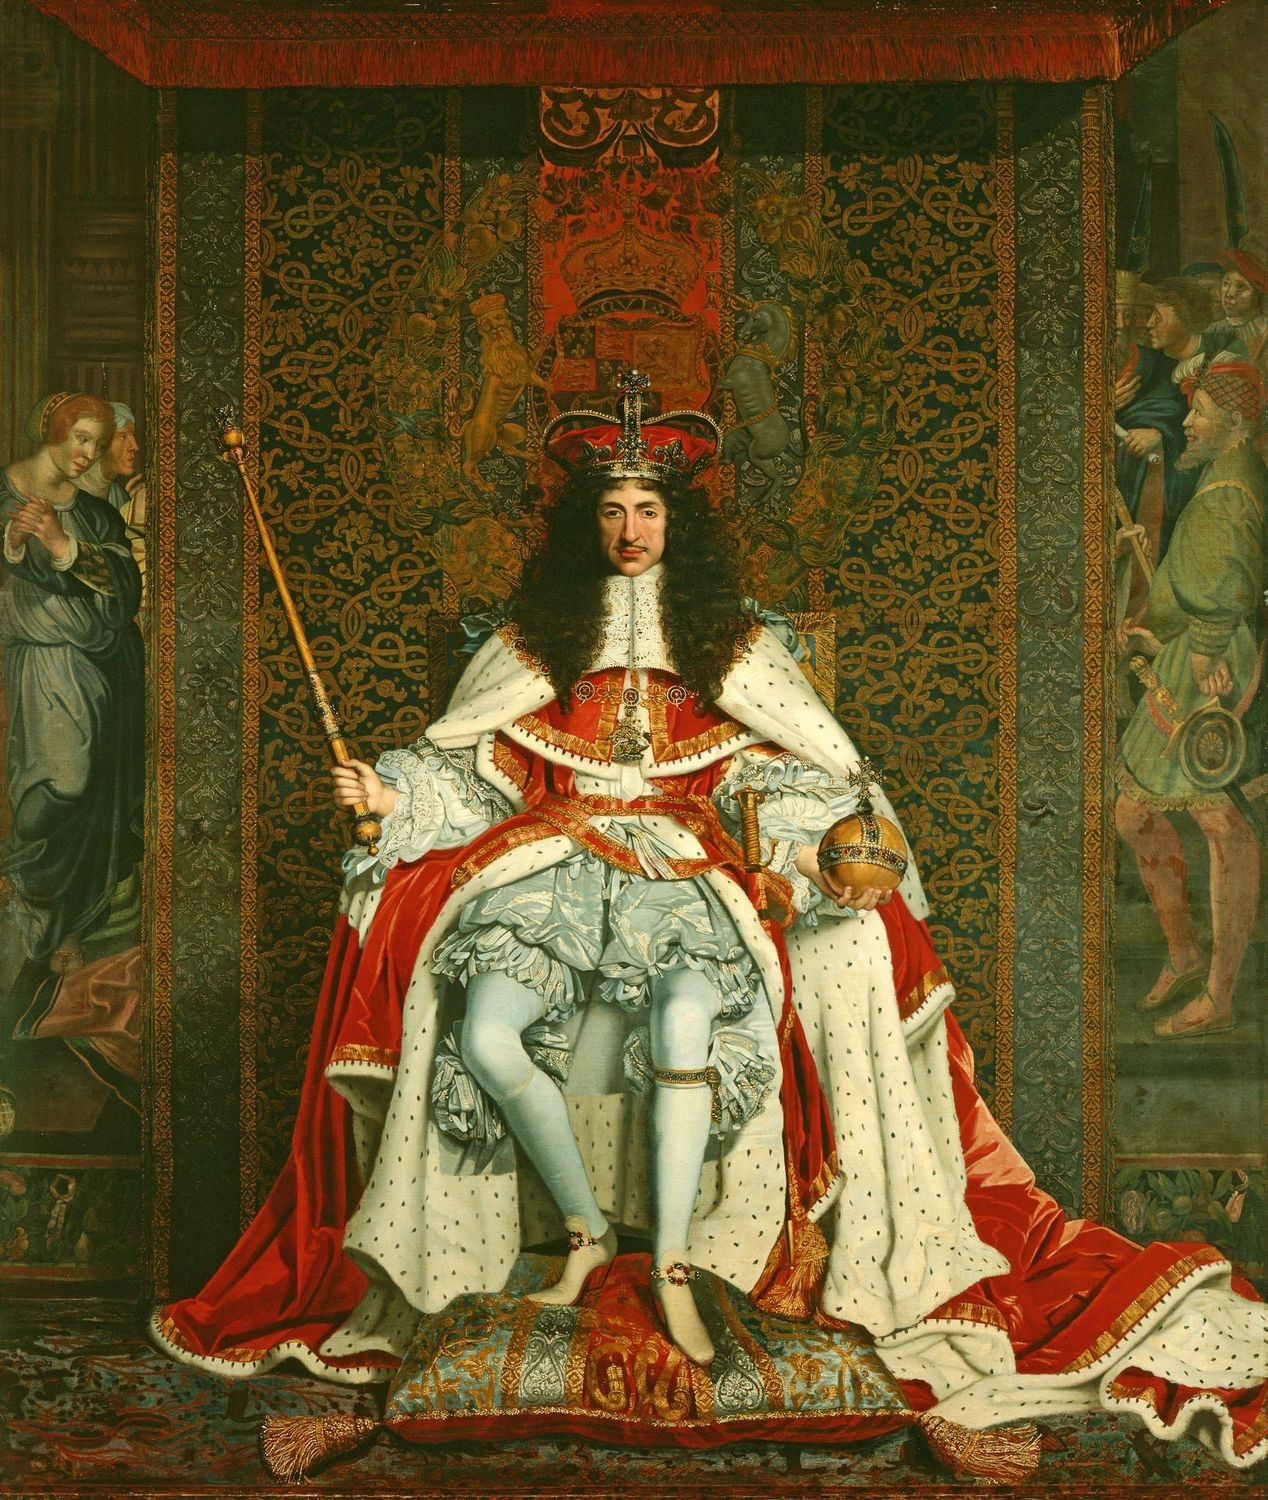 Charles II of England in 1661